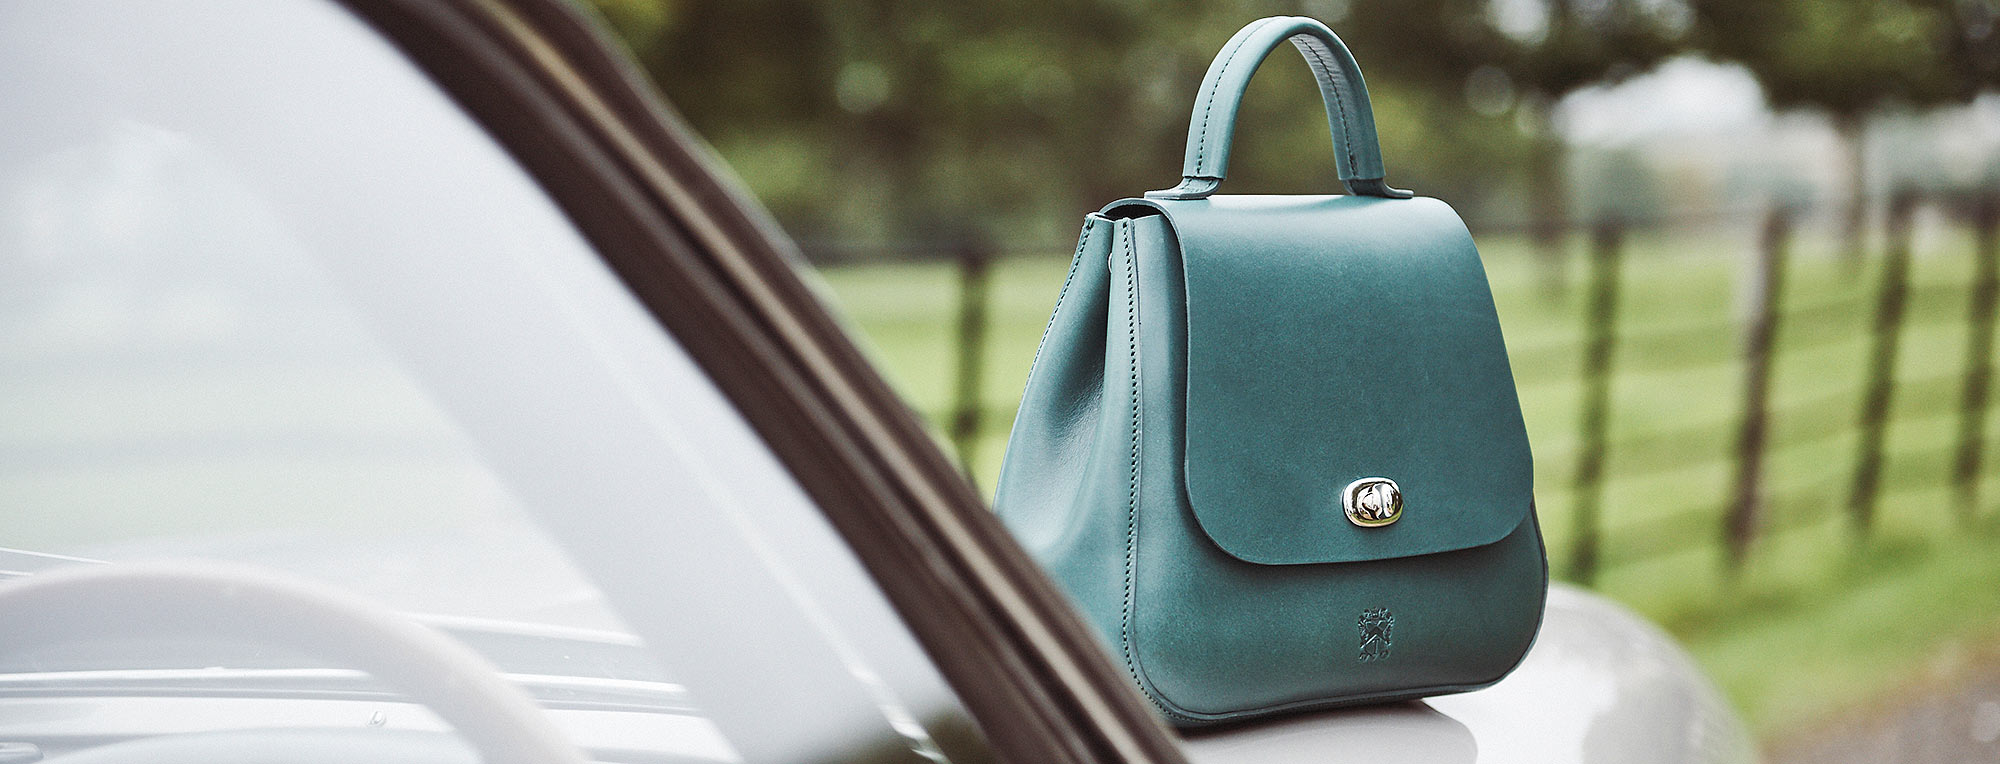 cef215dc1a ... the finest full-grain leather infuses every piece we create